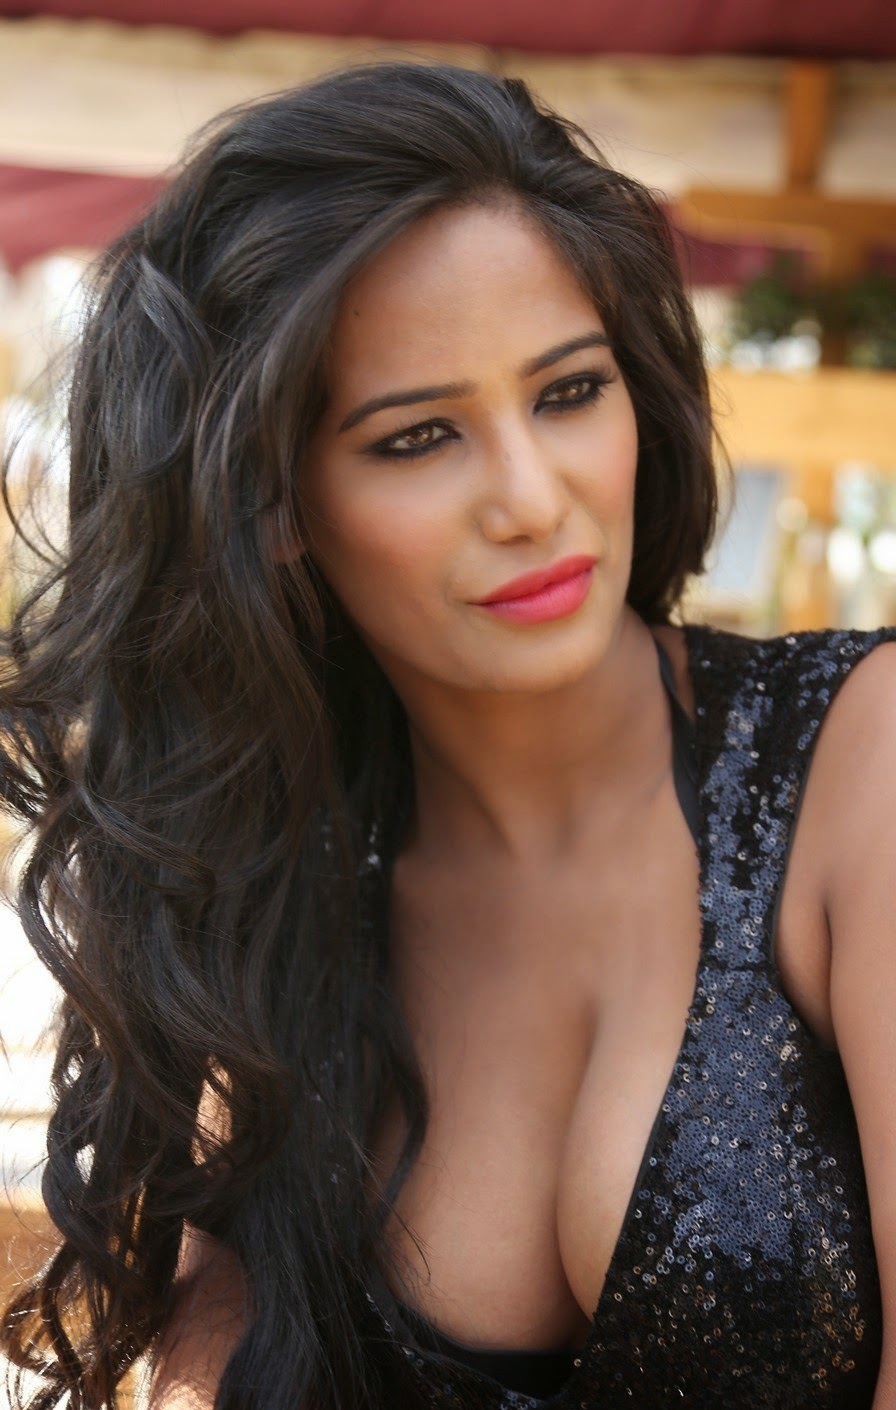 Actress poonam pandey latest cute hot exclusive black dress cleavage